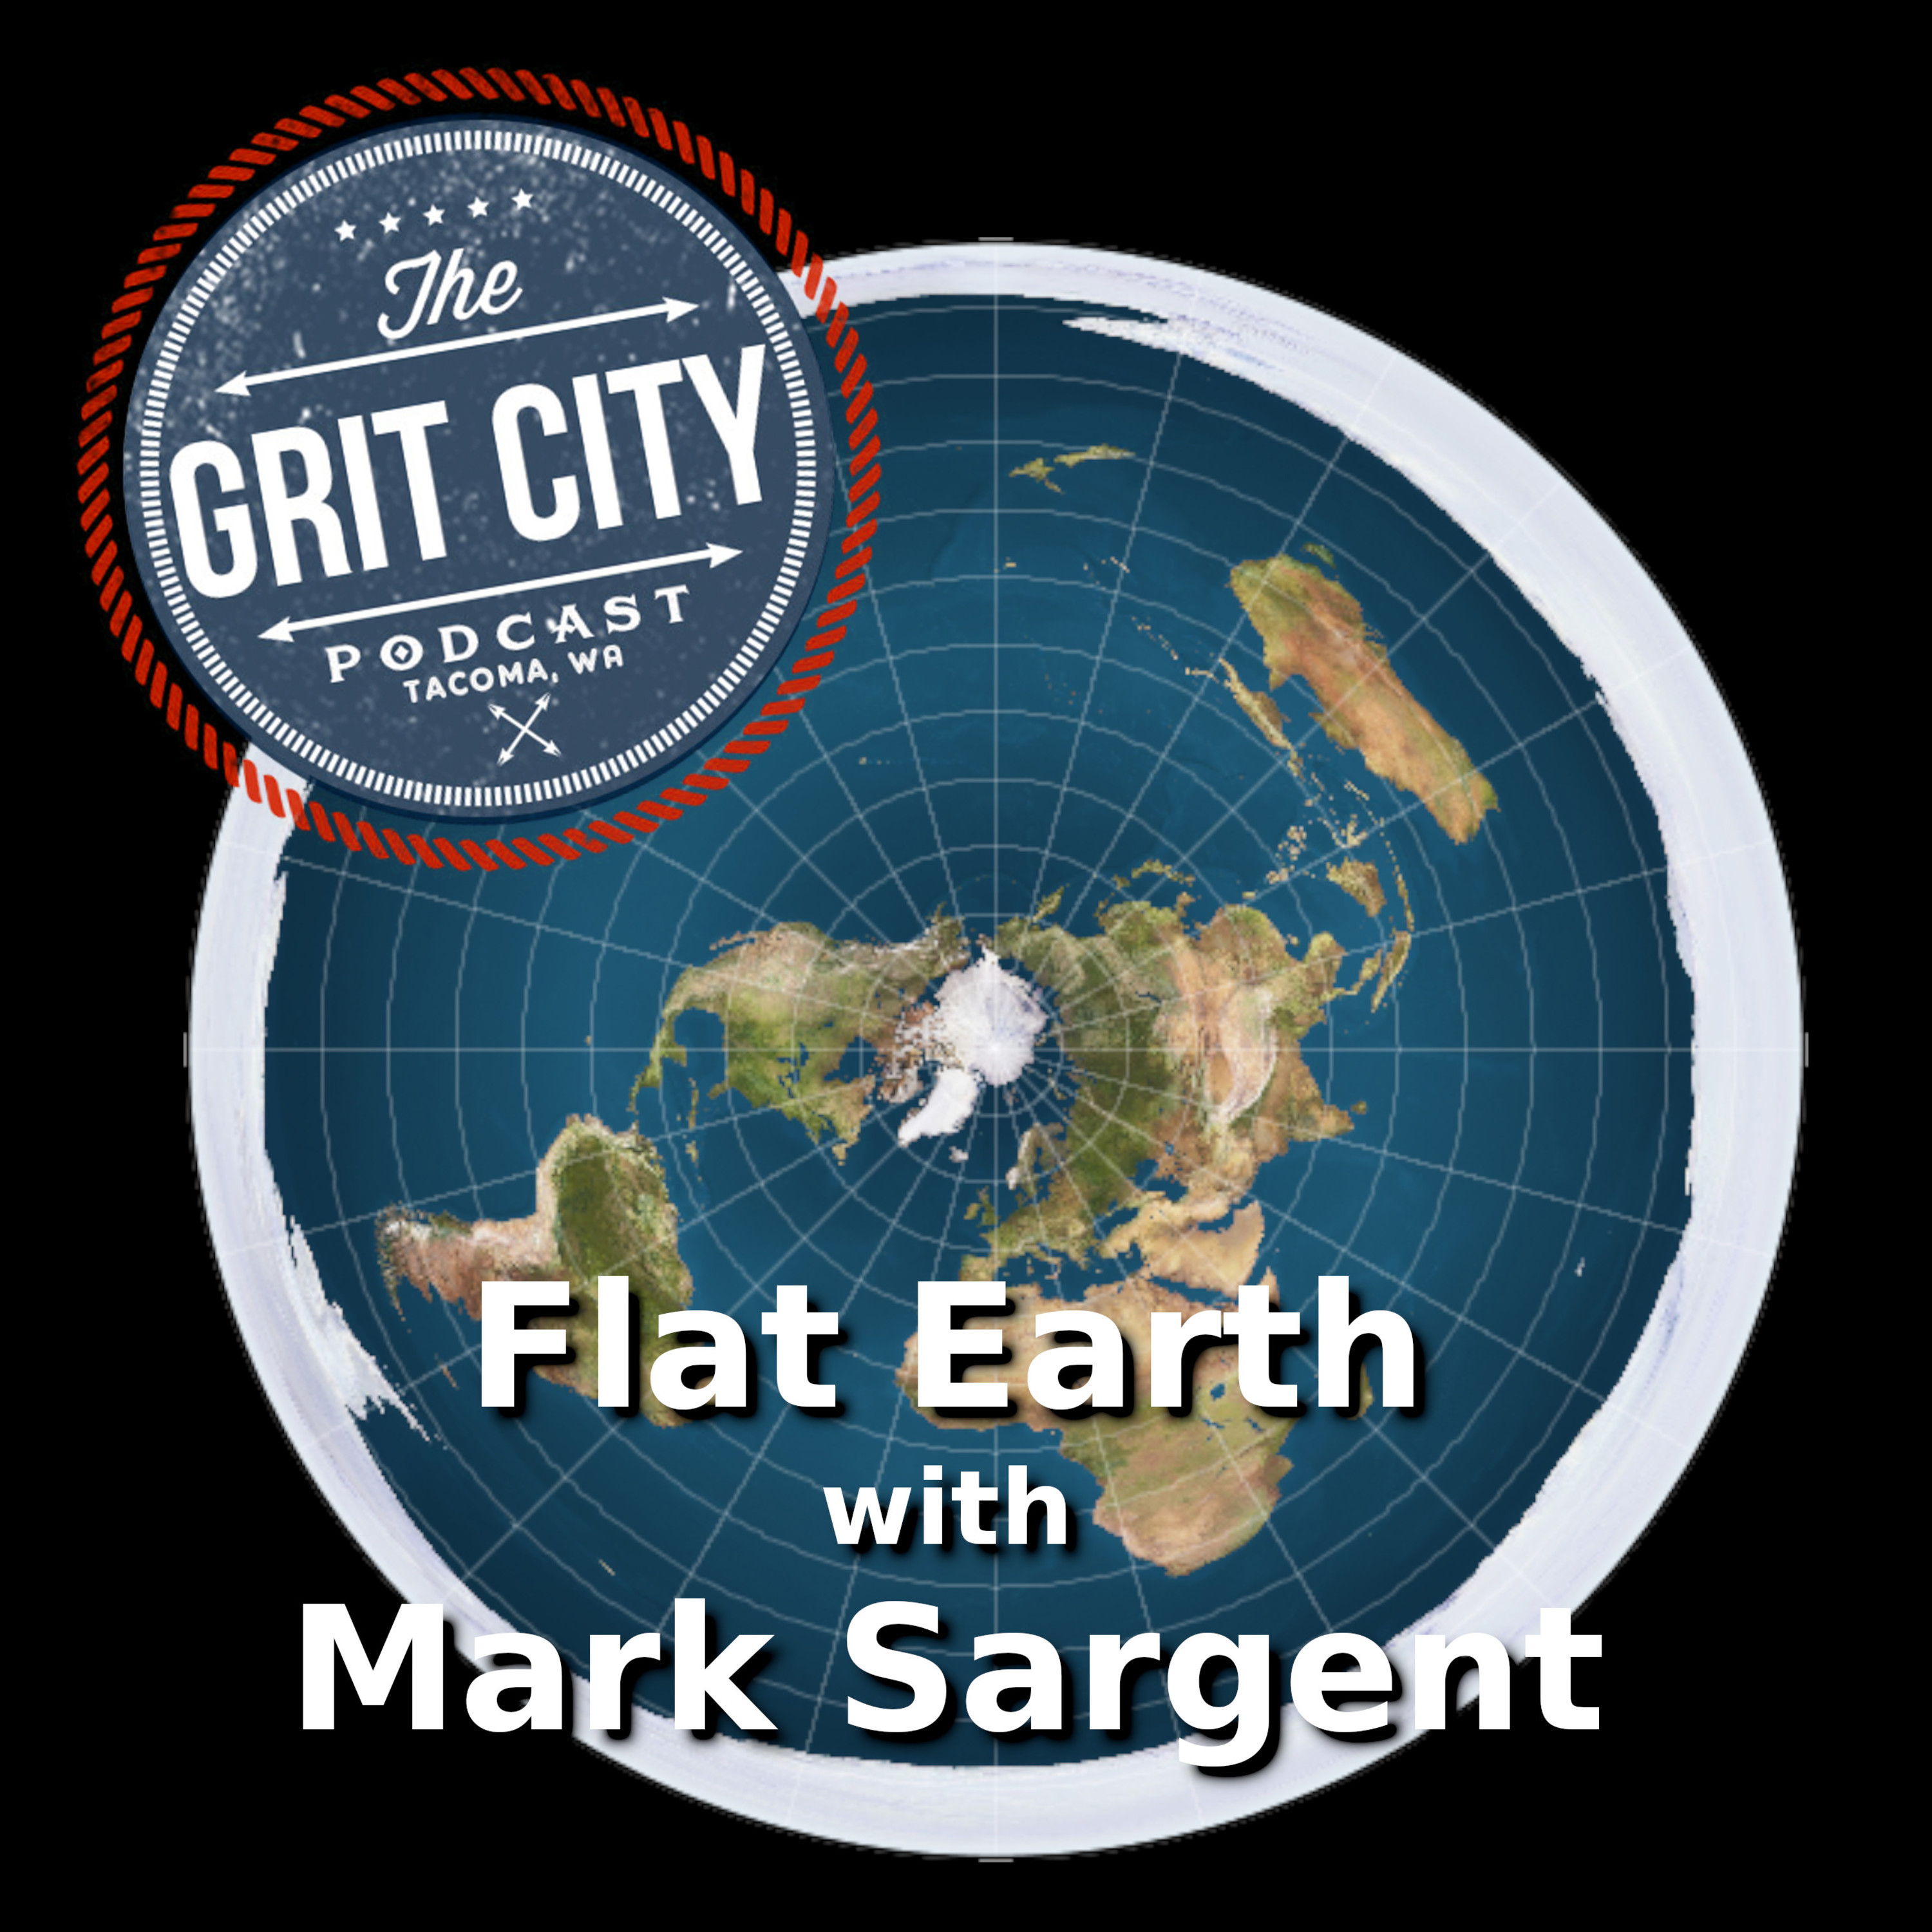 Flat Earth with Mark Sargent – The Grit City Podcast